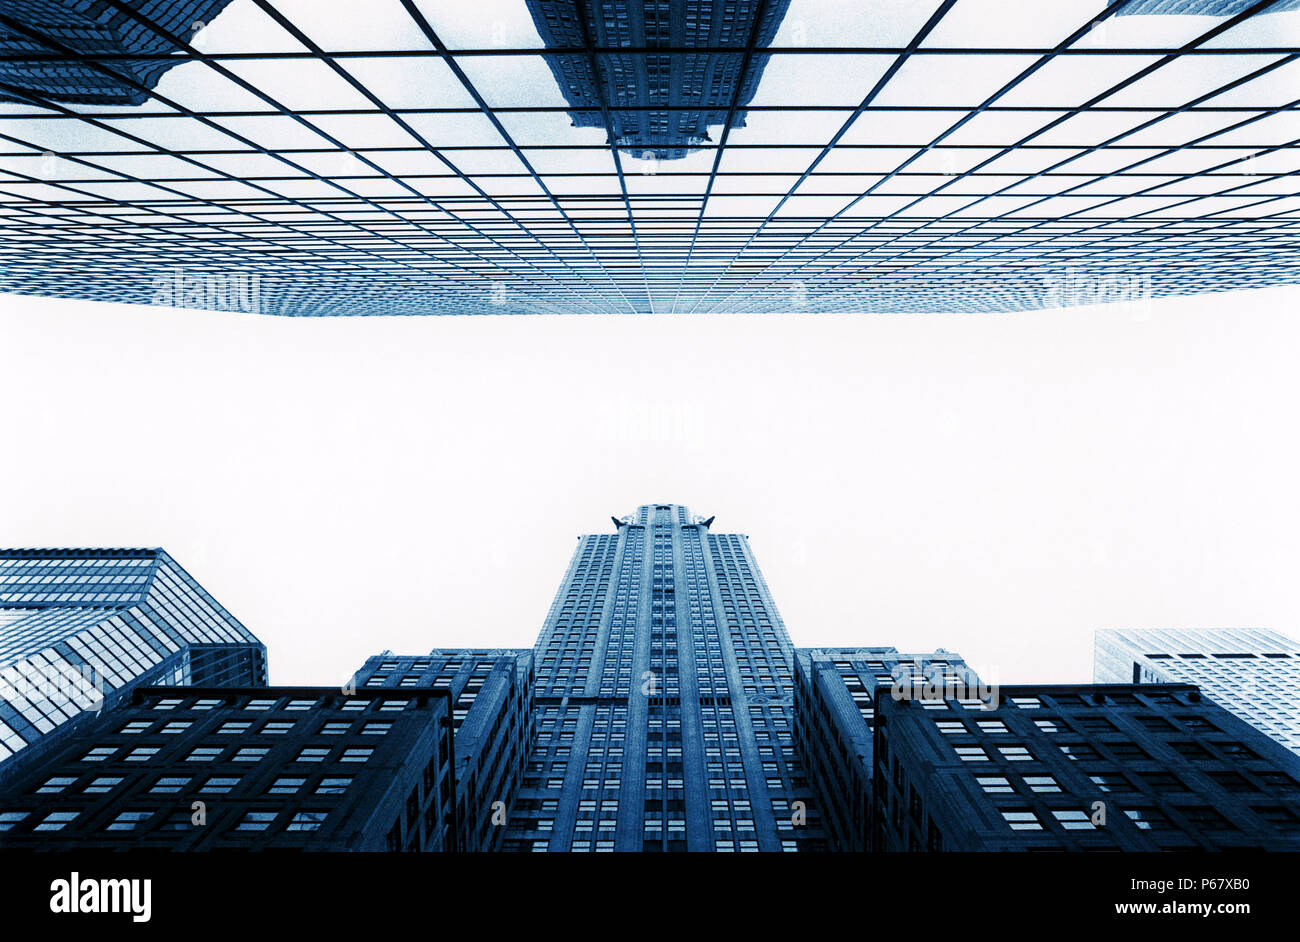 High Rise in New York - Stock Image